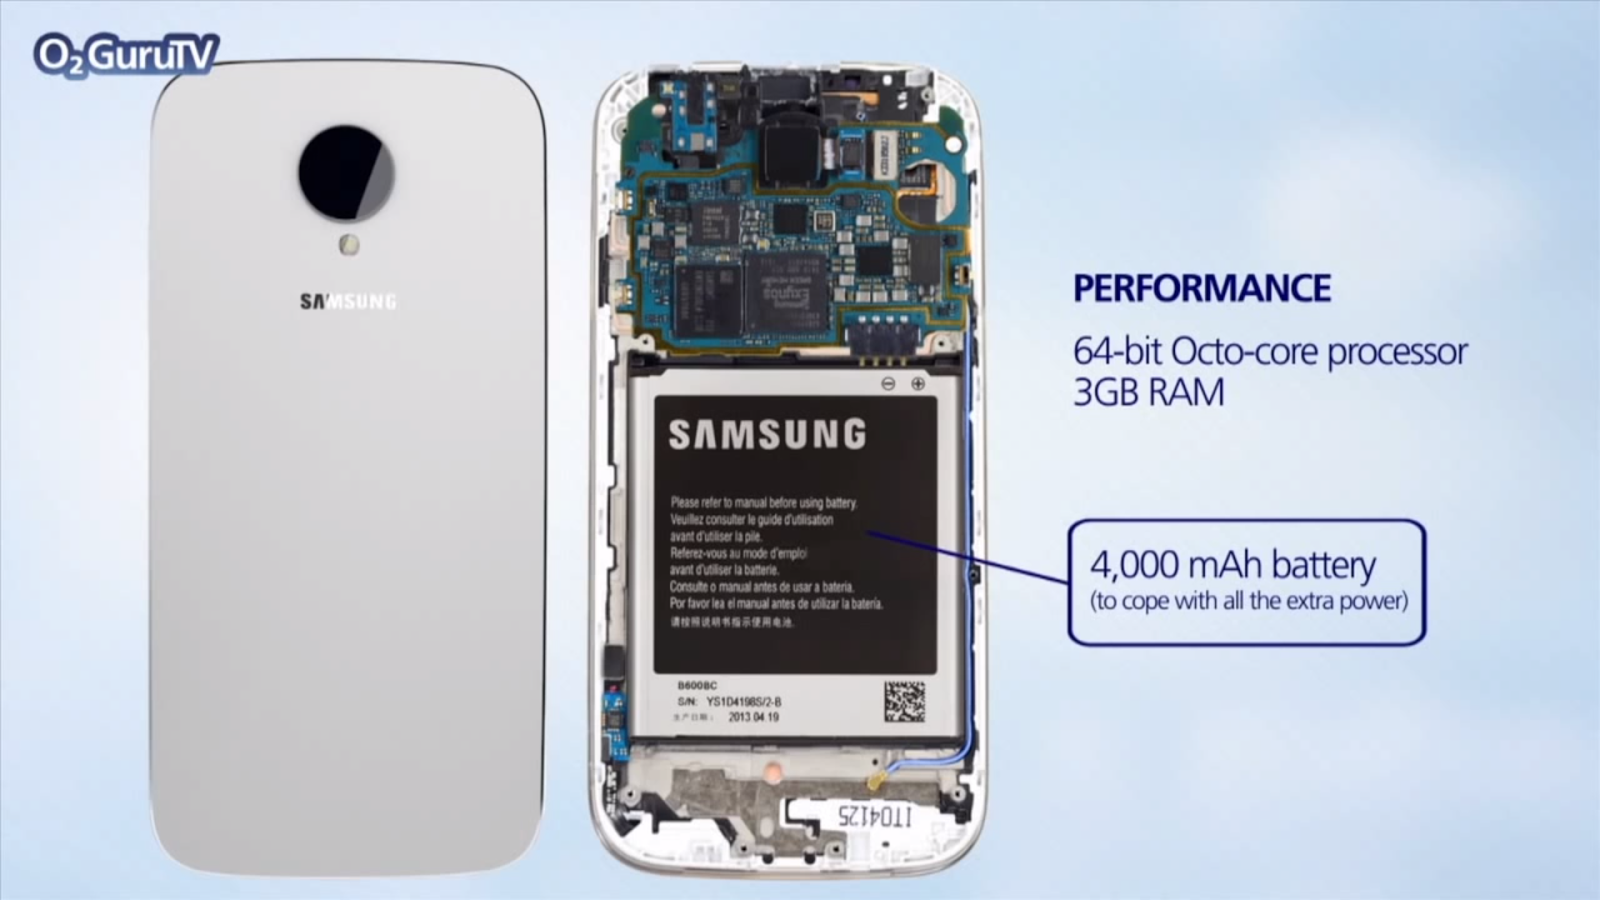 Samsung Galaxy S5 rumoured to adopt Snapdragon 805 - The